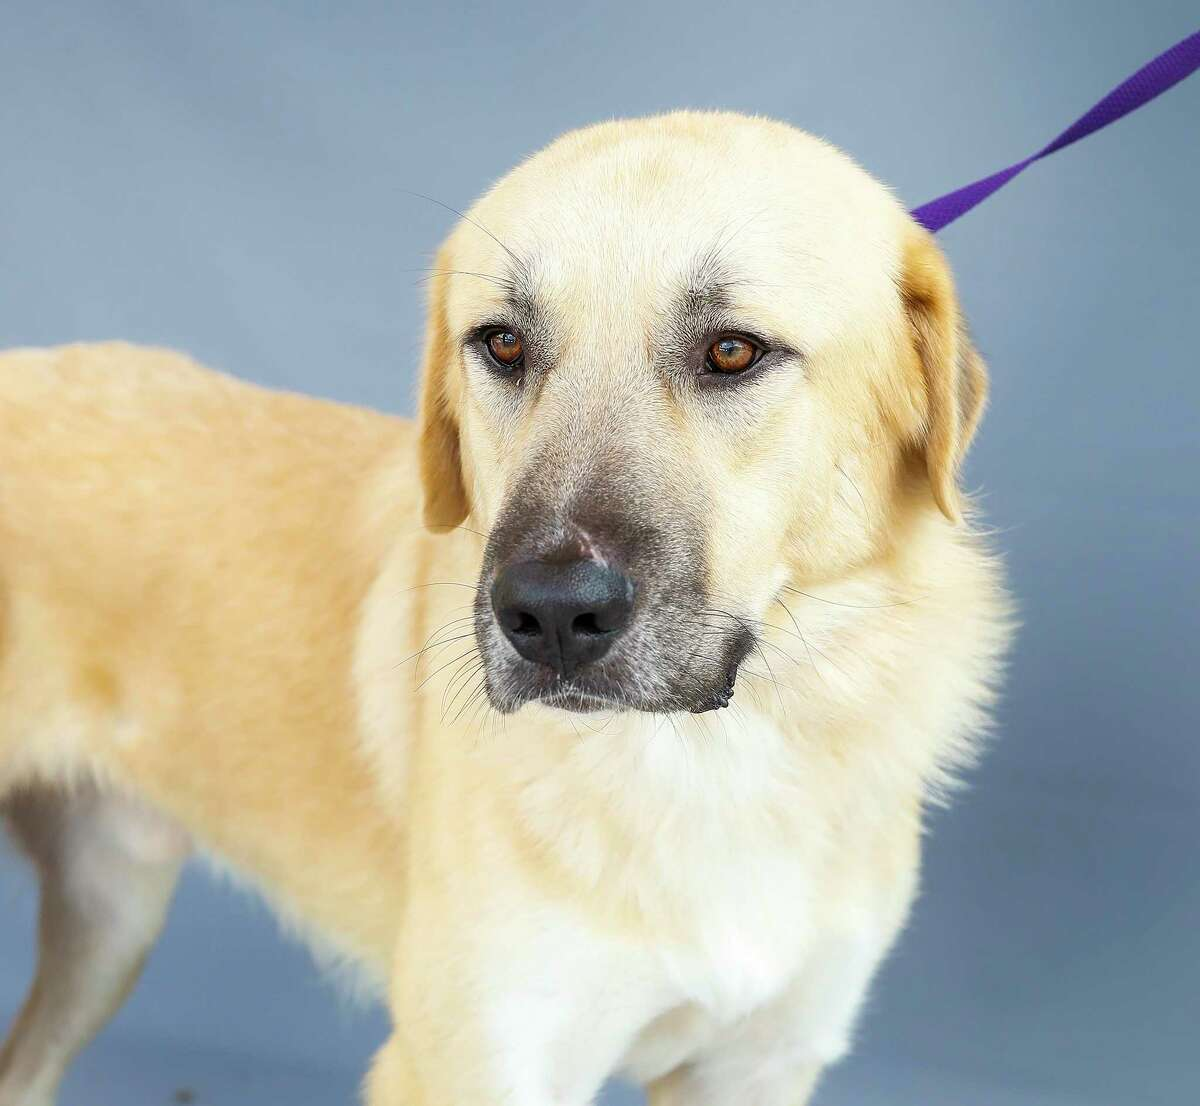 Bruce (A558817) is a 2-year-old, male, cream Great Pyrenees. This gorgeous boy was brought in as a stray. Shelter staff say he is very mild-mannered and gentle.